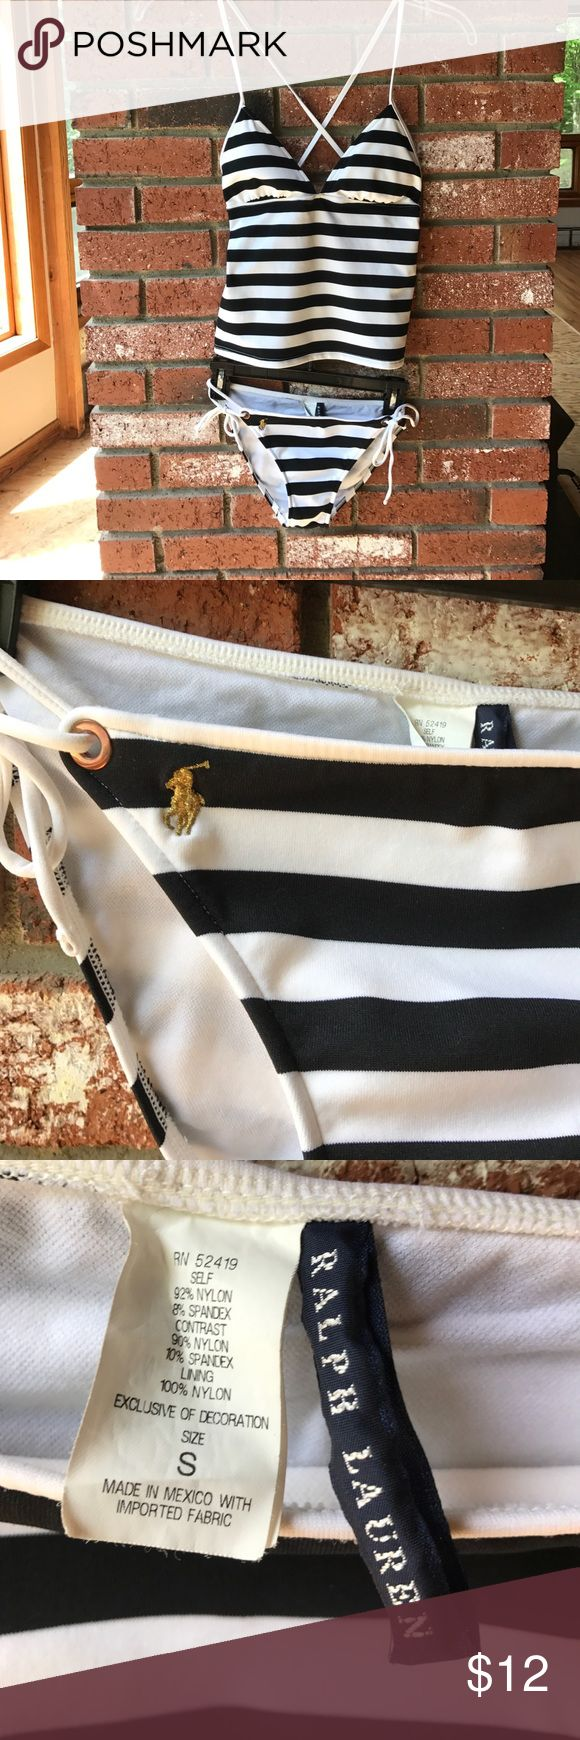 Ralph Lauren 2 piece cami stripe bathing suit S/M Hardly ever worn, no flaws! Selling my 2 piece authentic Ralph Lauren swimsuit - nautical black and white stripes w/ gold pony logo on bottoms. Bottoms are size Small, top is size medium. Cute! Ralph Lauren Swim Bikinis